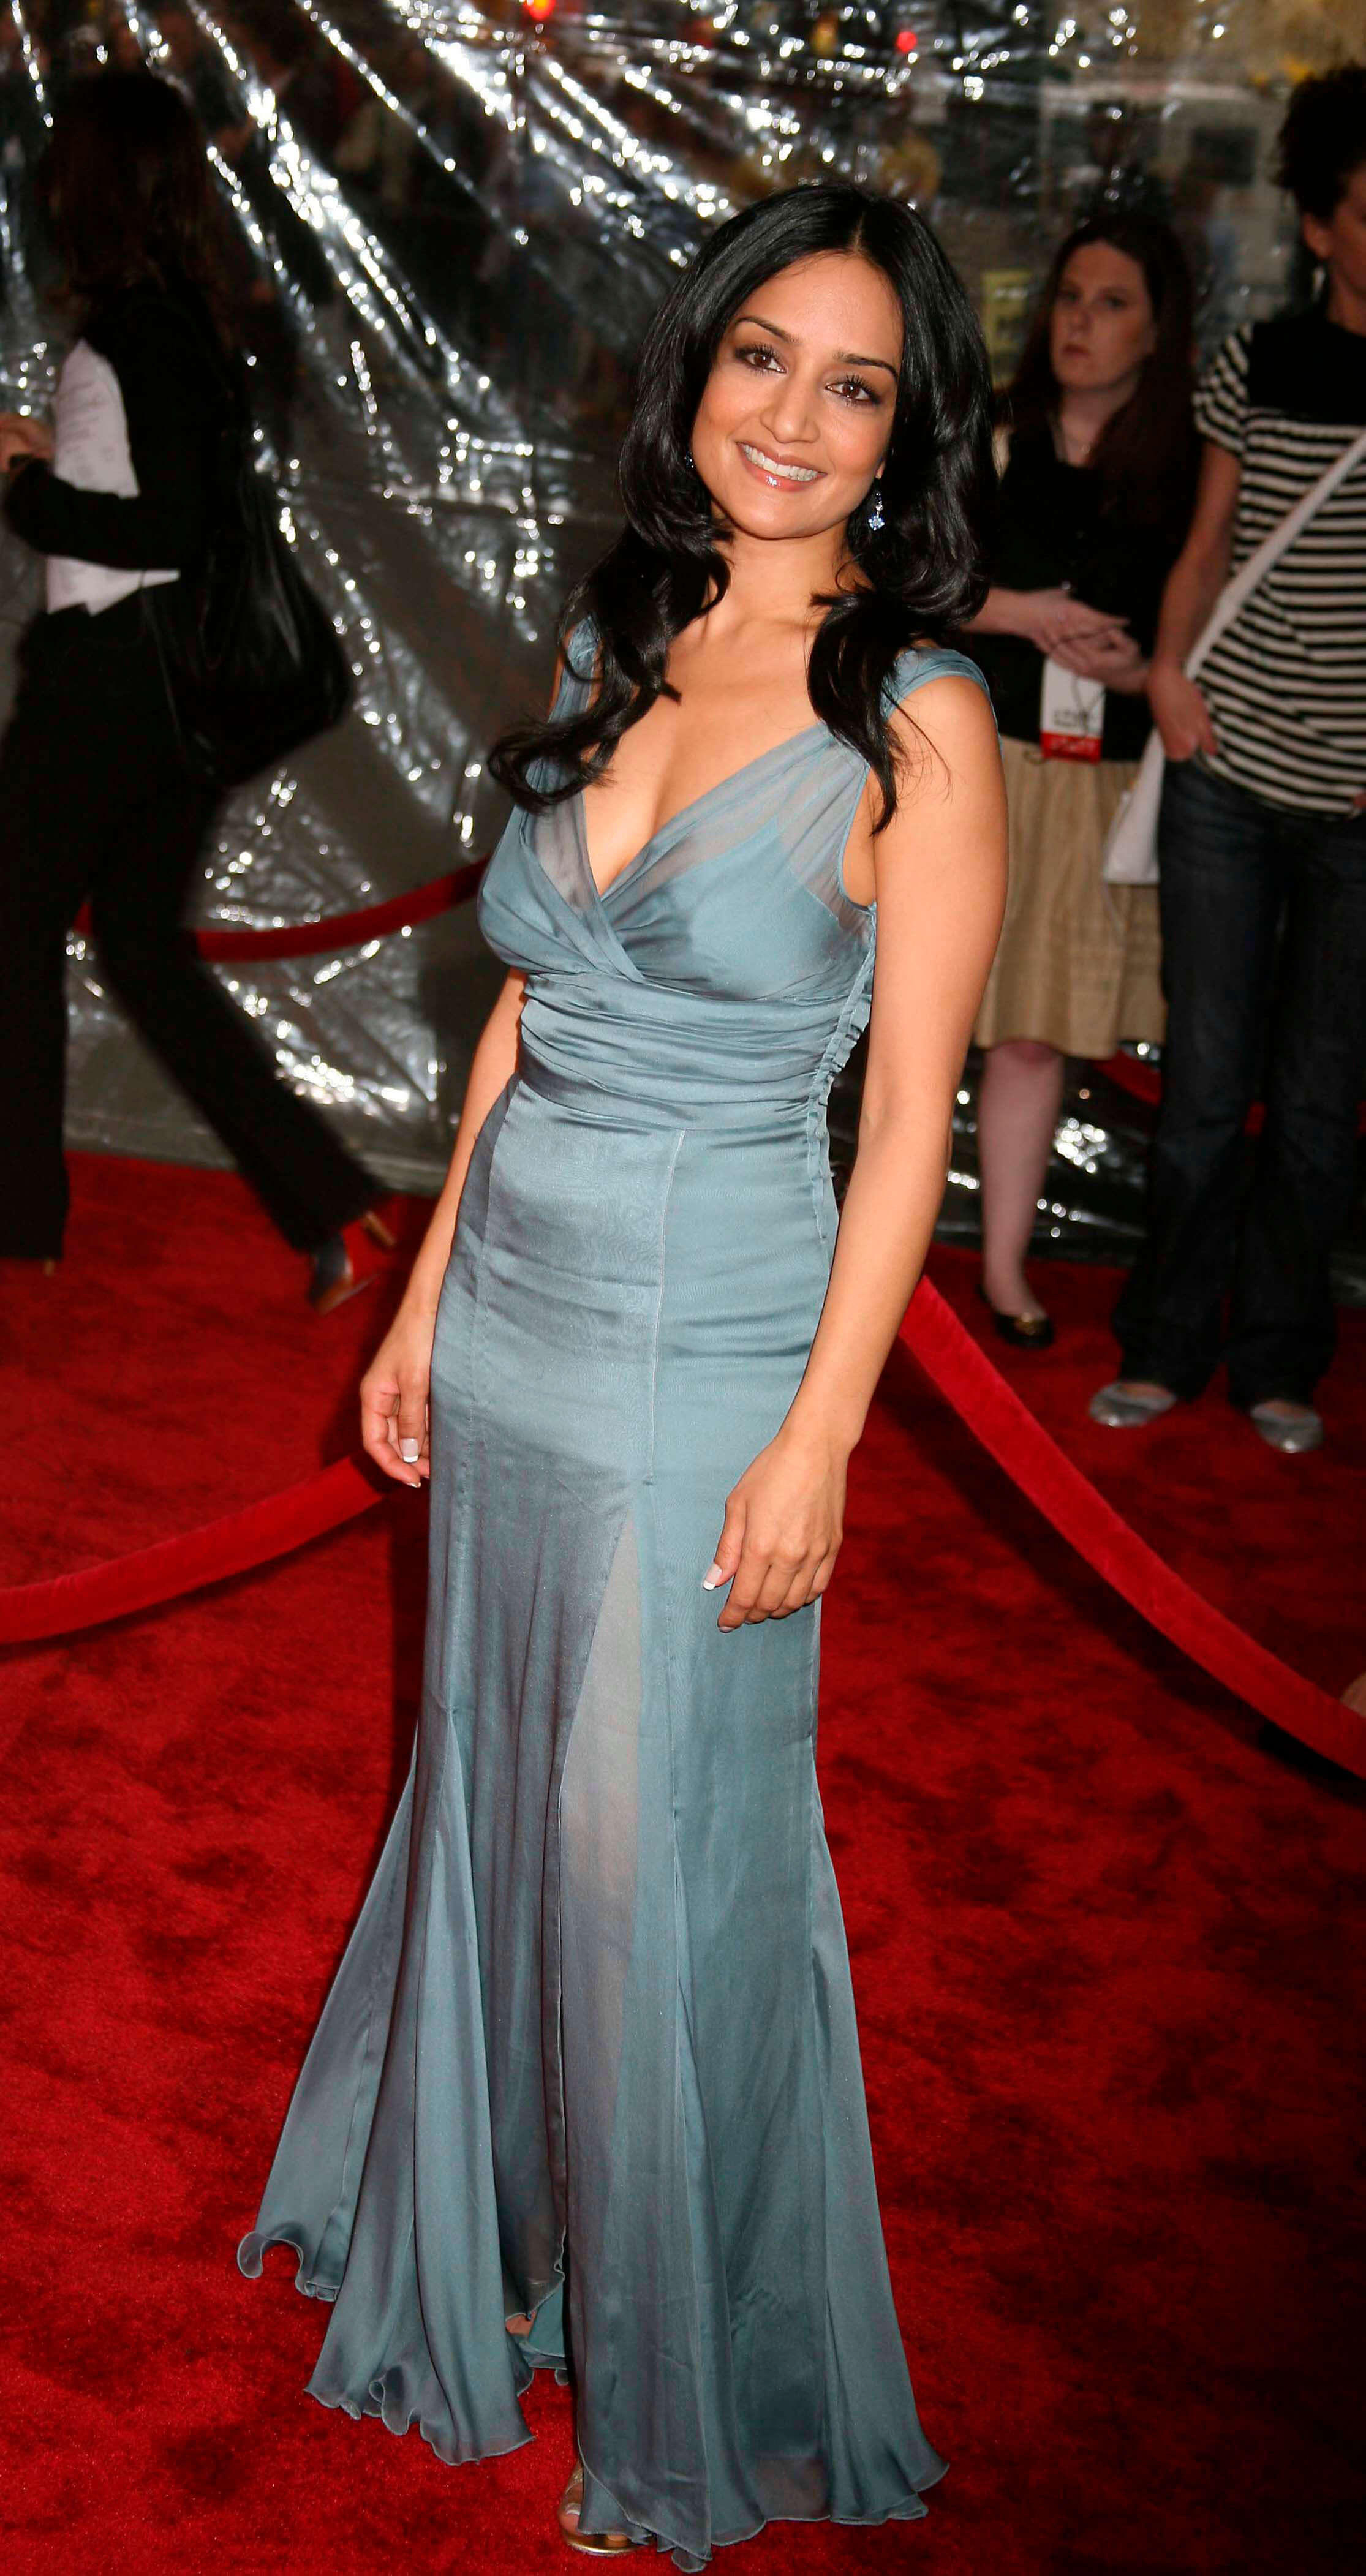 49 Archie Panjabi Hot Pictures Are So Damn Hot That You Can